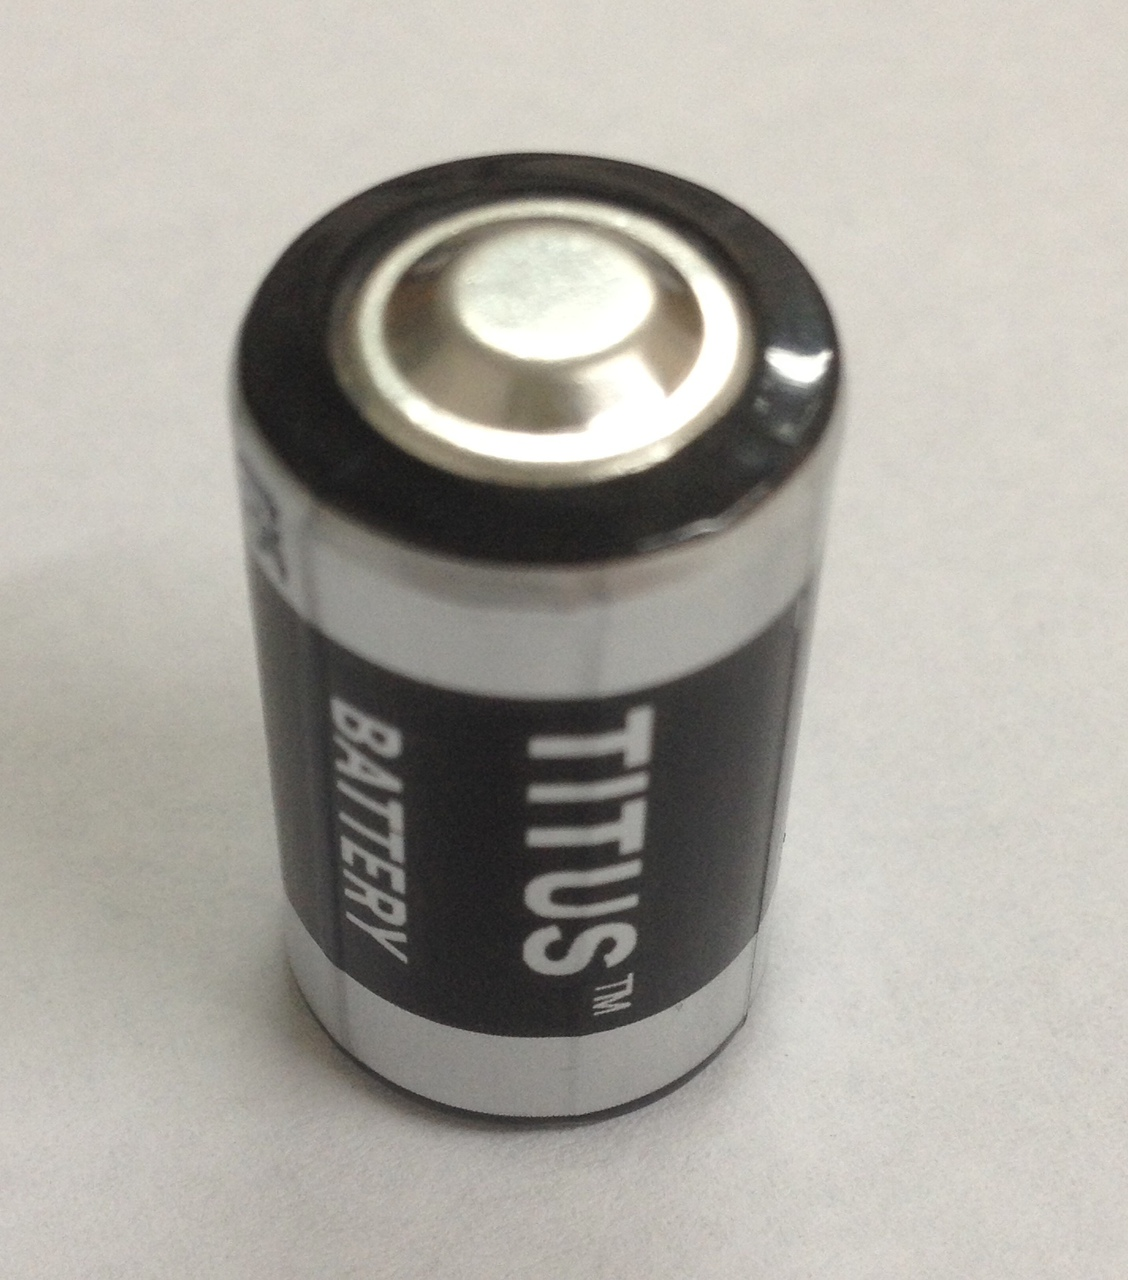 Titus 1/2 AA Size 3.6V ER14250T Lithium Battery With Solder Tabs - 4 Pack + Free Shipping!